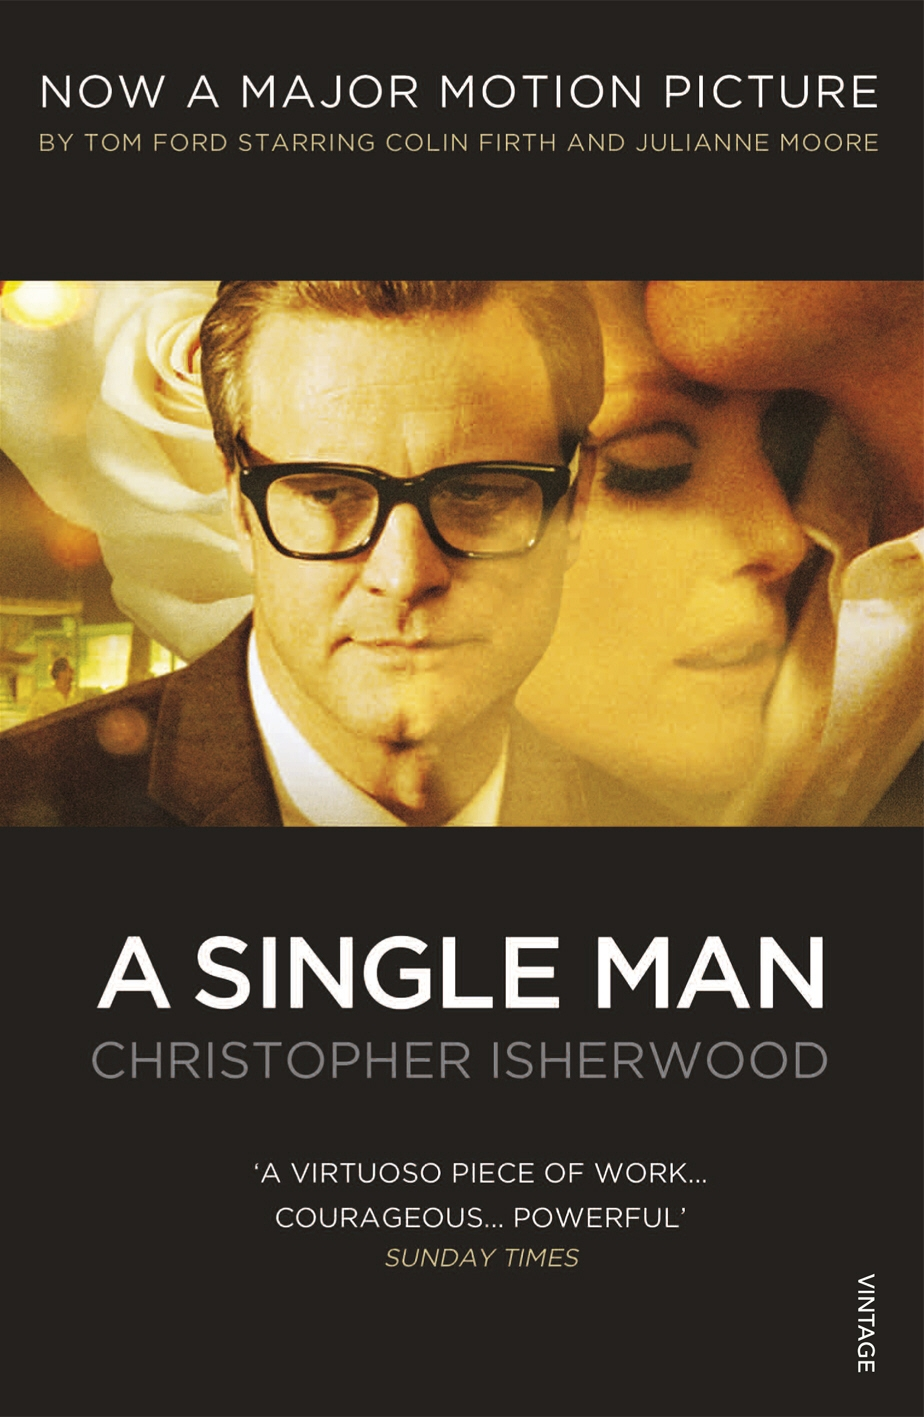 A single man christopher isherwood quotes about love